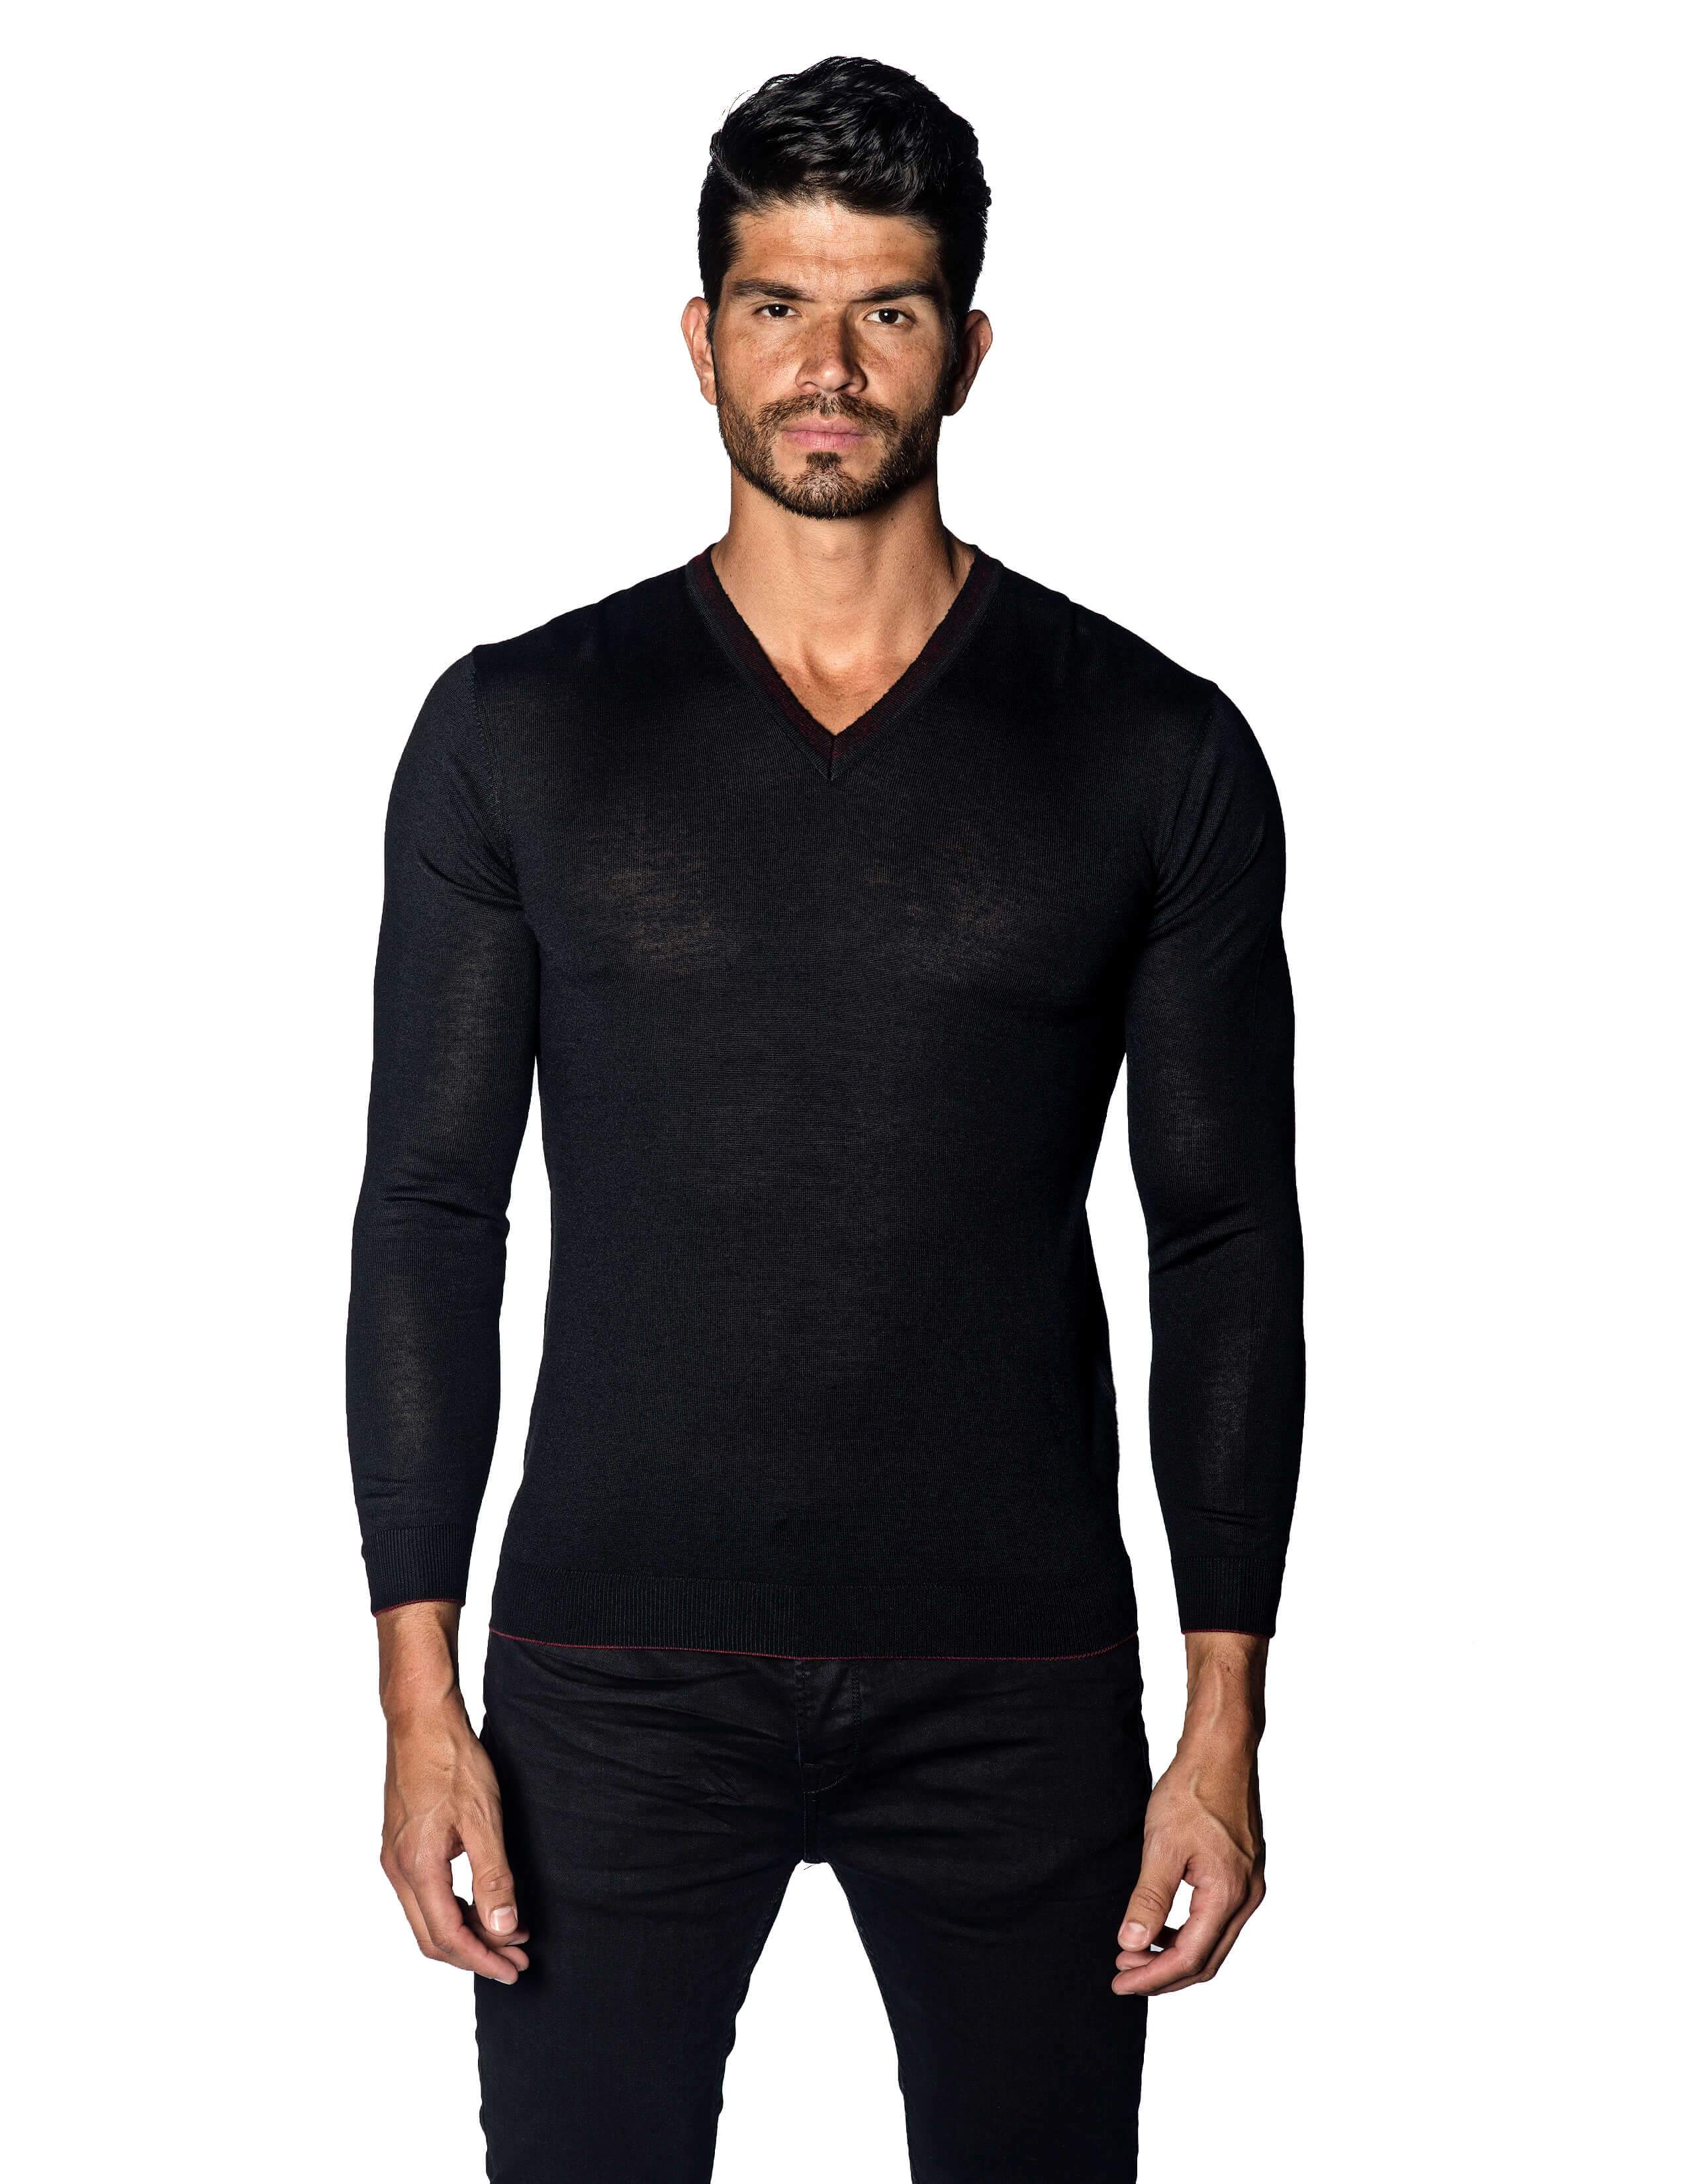 Black Sweater V-Neck with Piping for Men 1895-BK